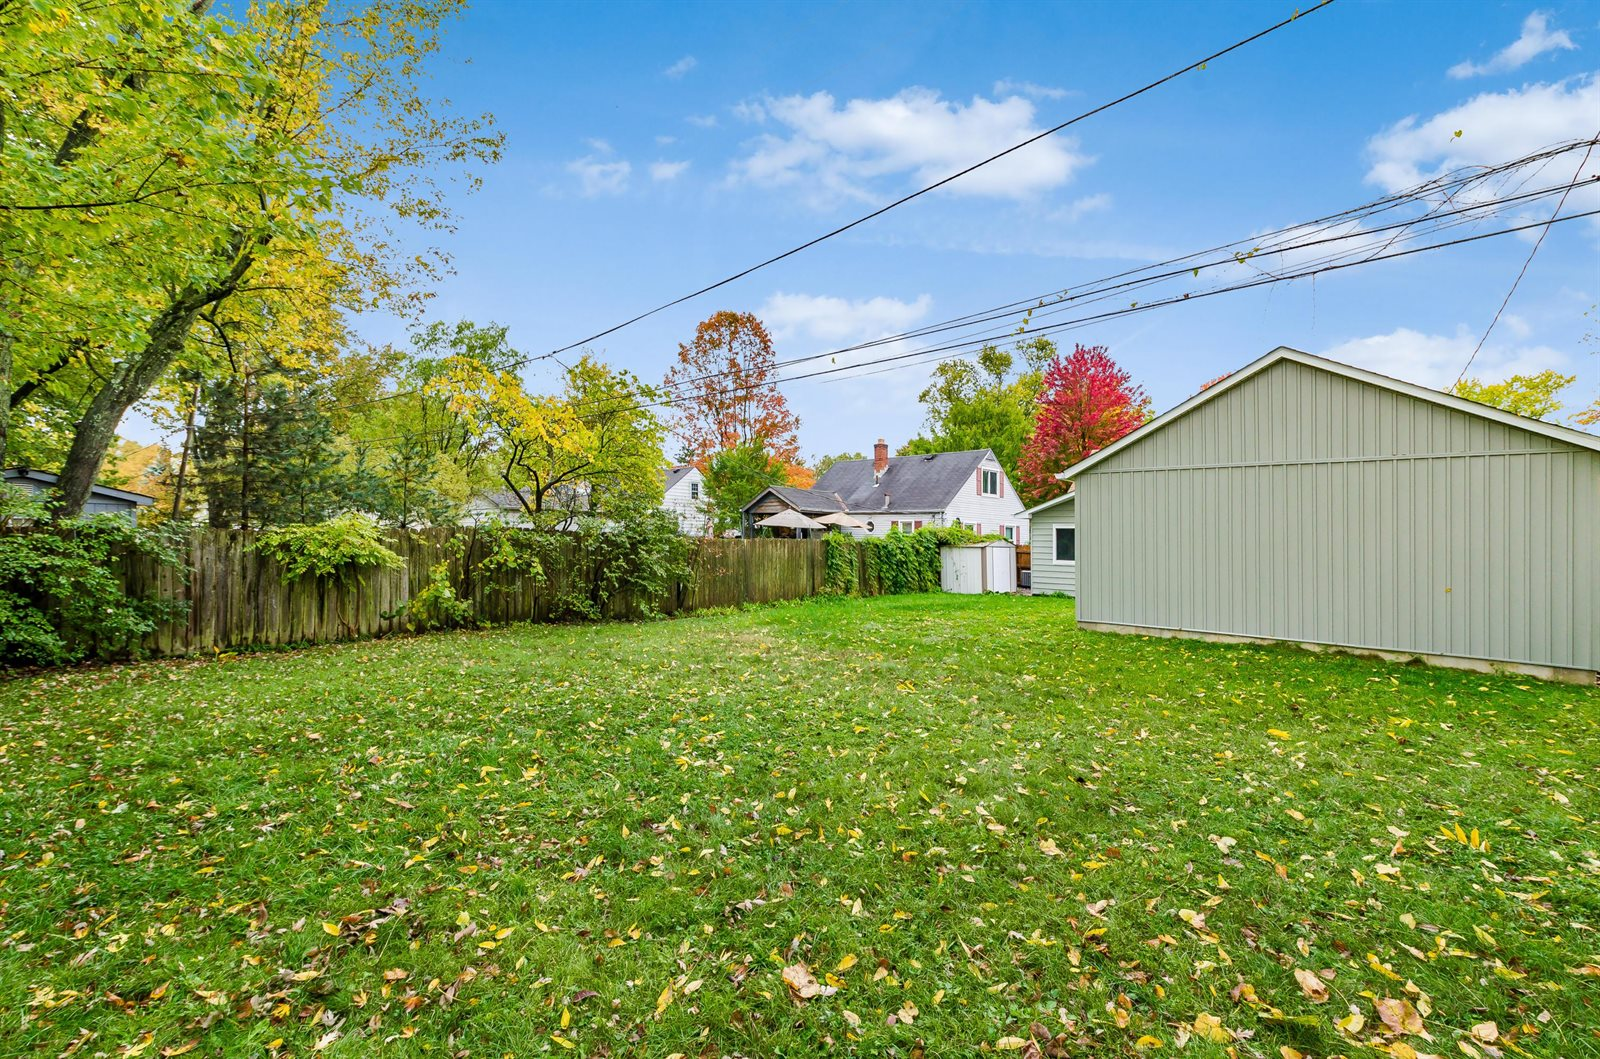 5776 Indianola Avenue, Worthington, OH 43085